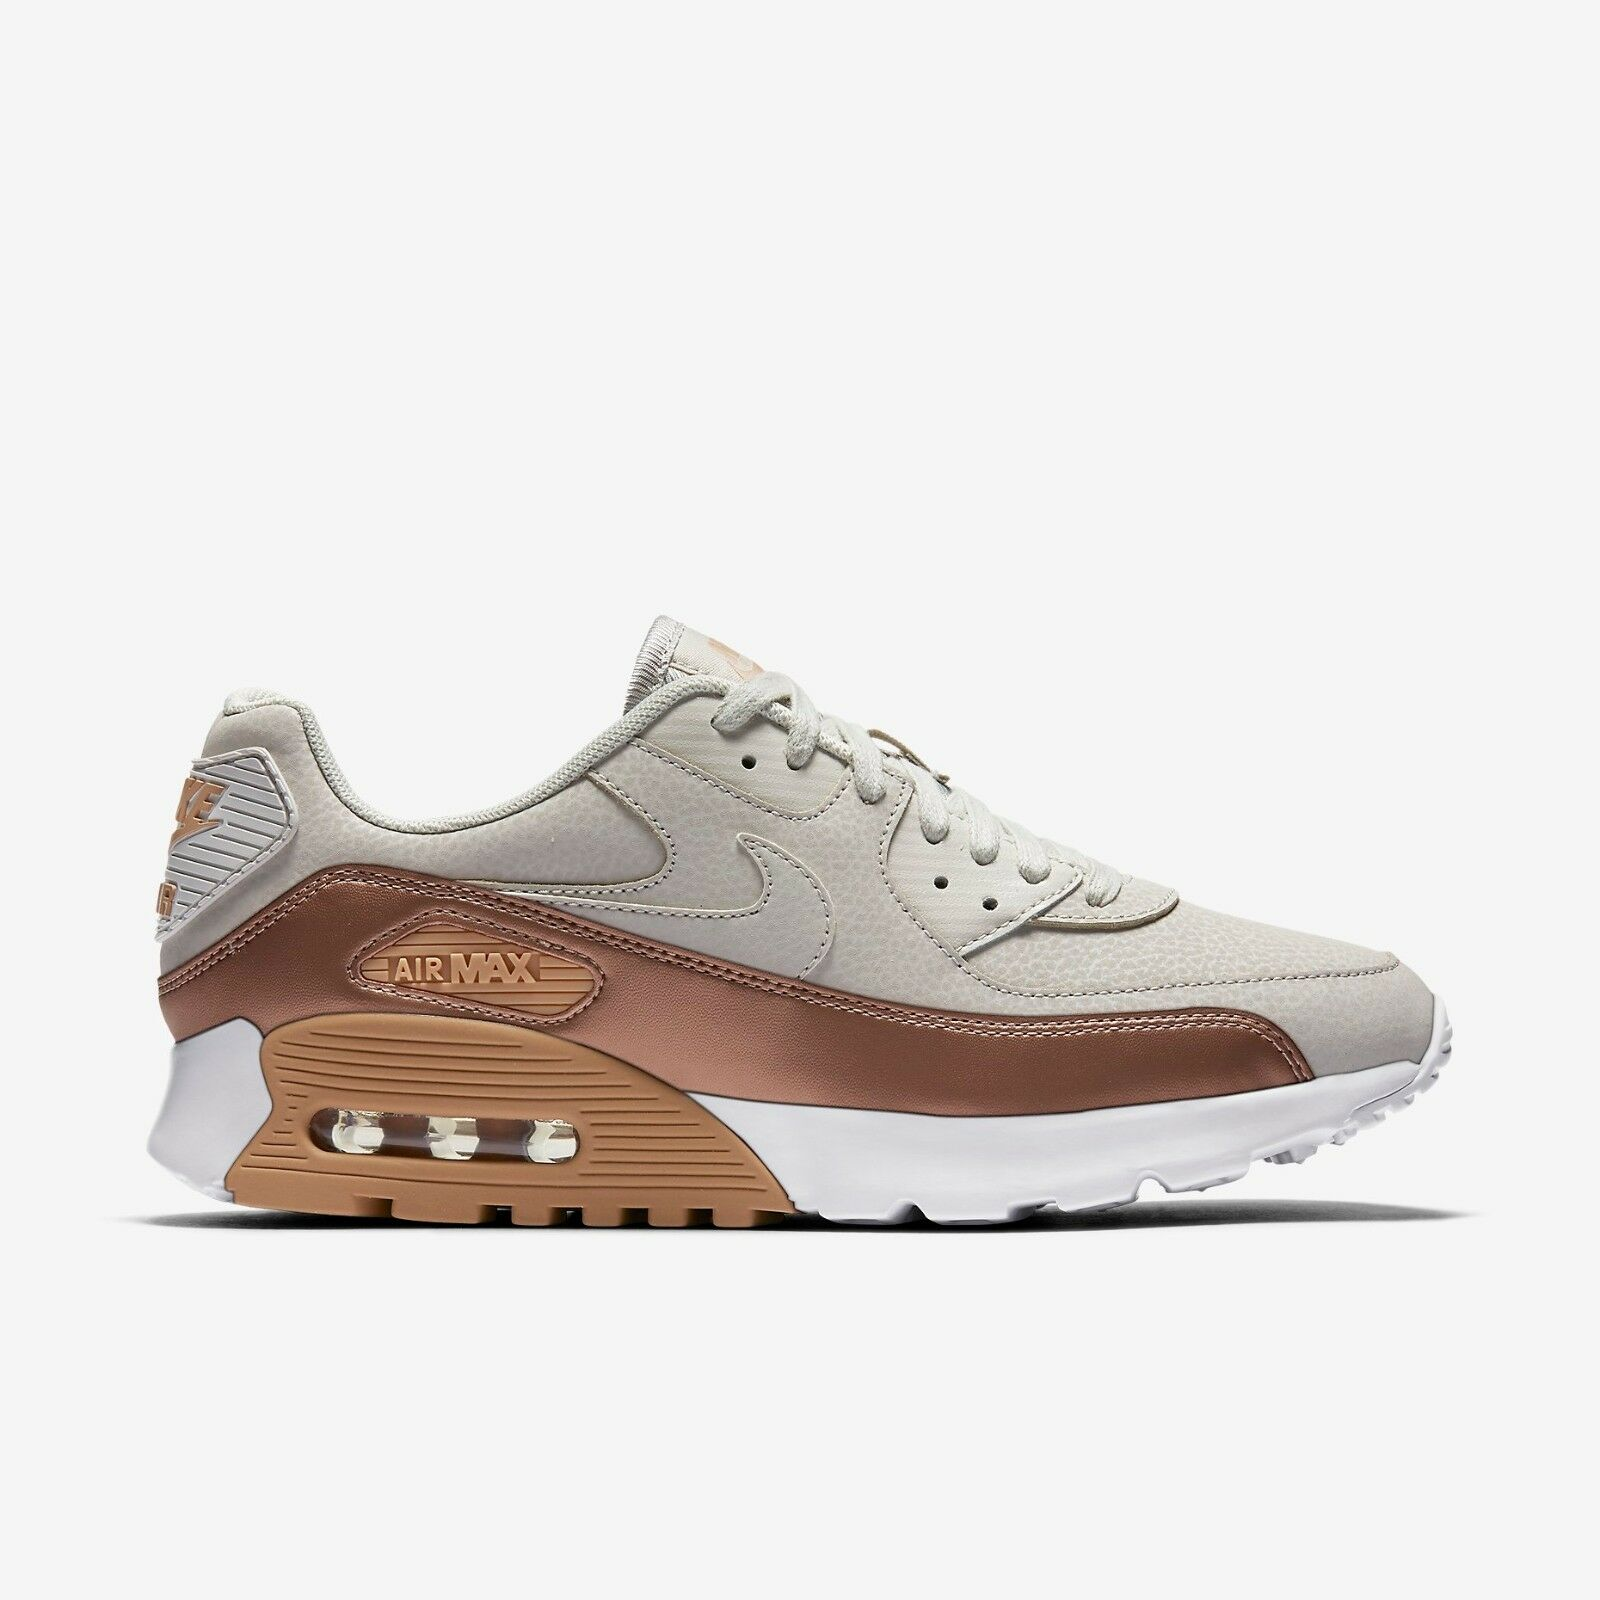 NIKE AIR MAX 90 ULTRA SE WOMEN'S SHOE - Light Bone/White/Metallic Red Bronze